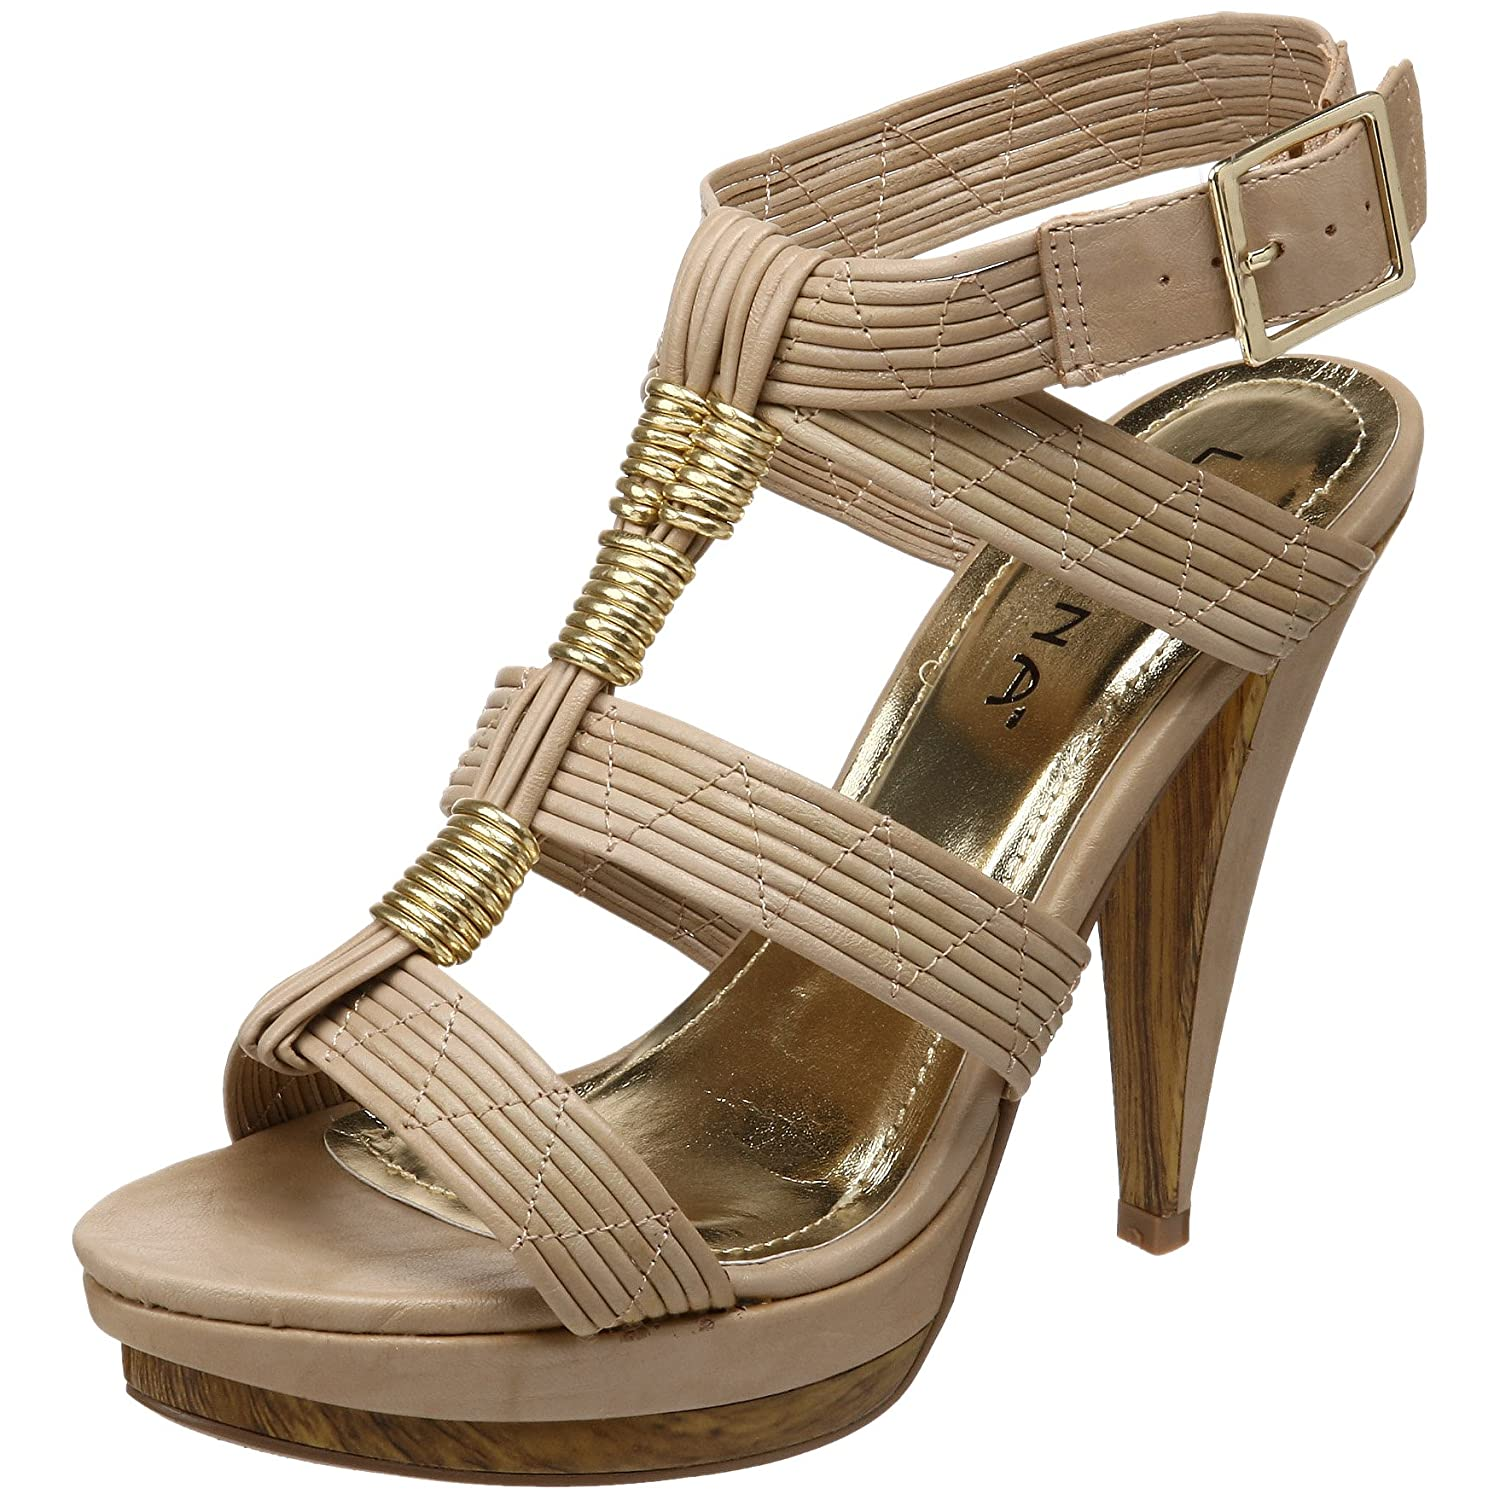 Liliana Pagona 1 Platform Sandal from endless.com